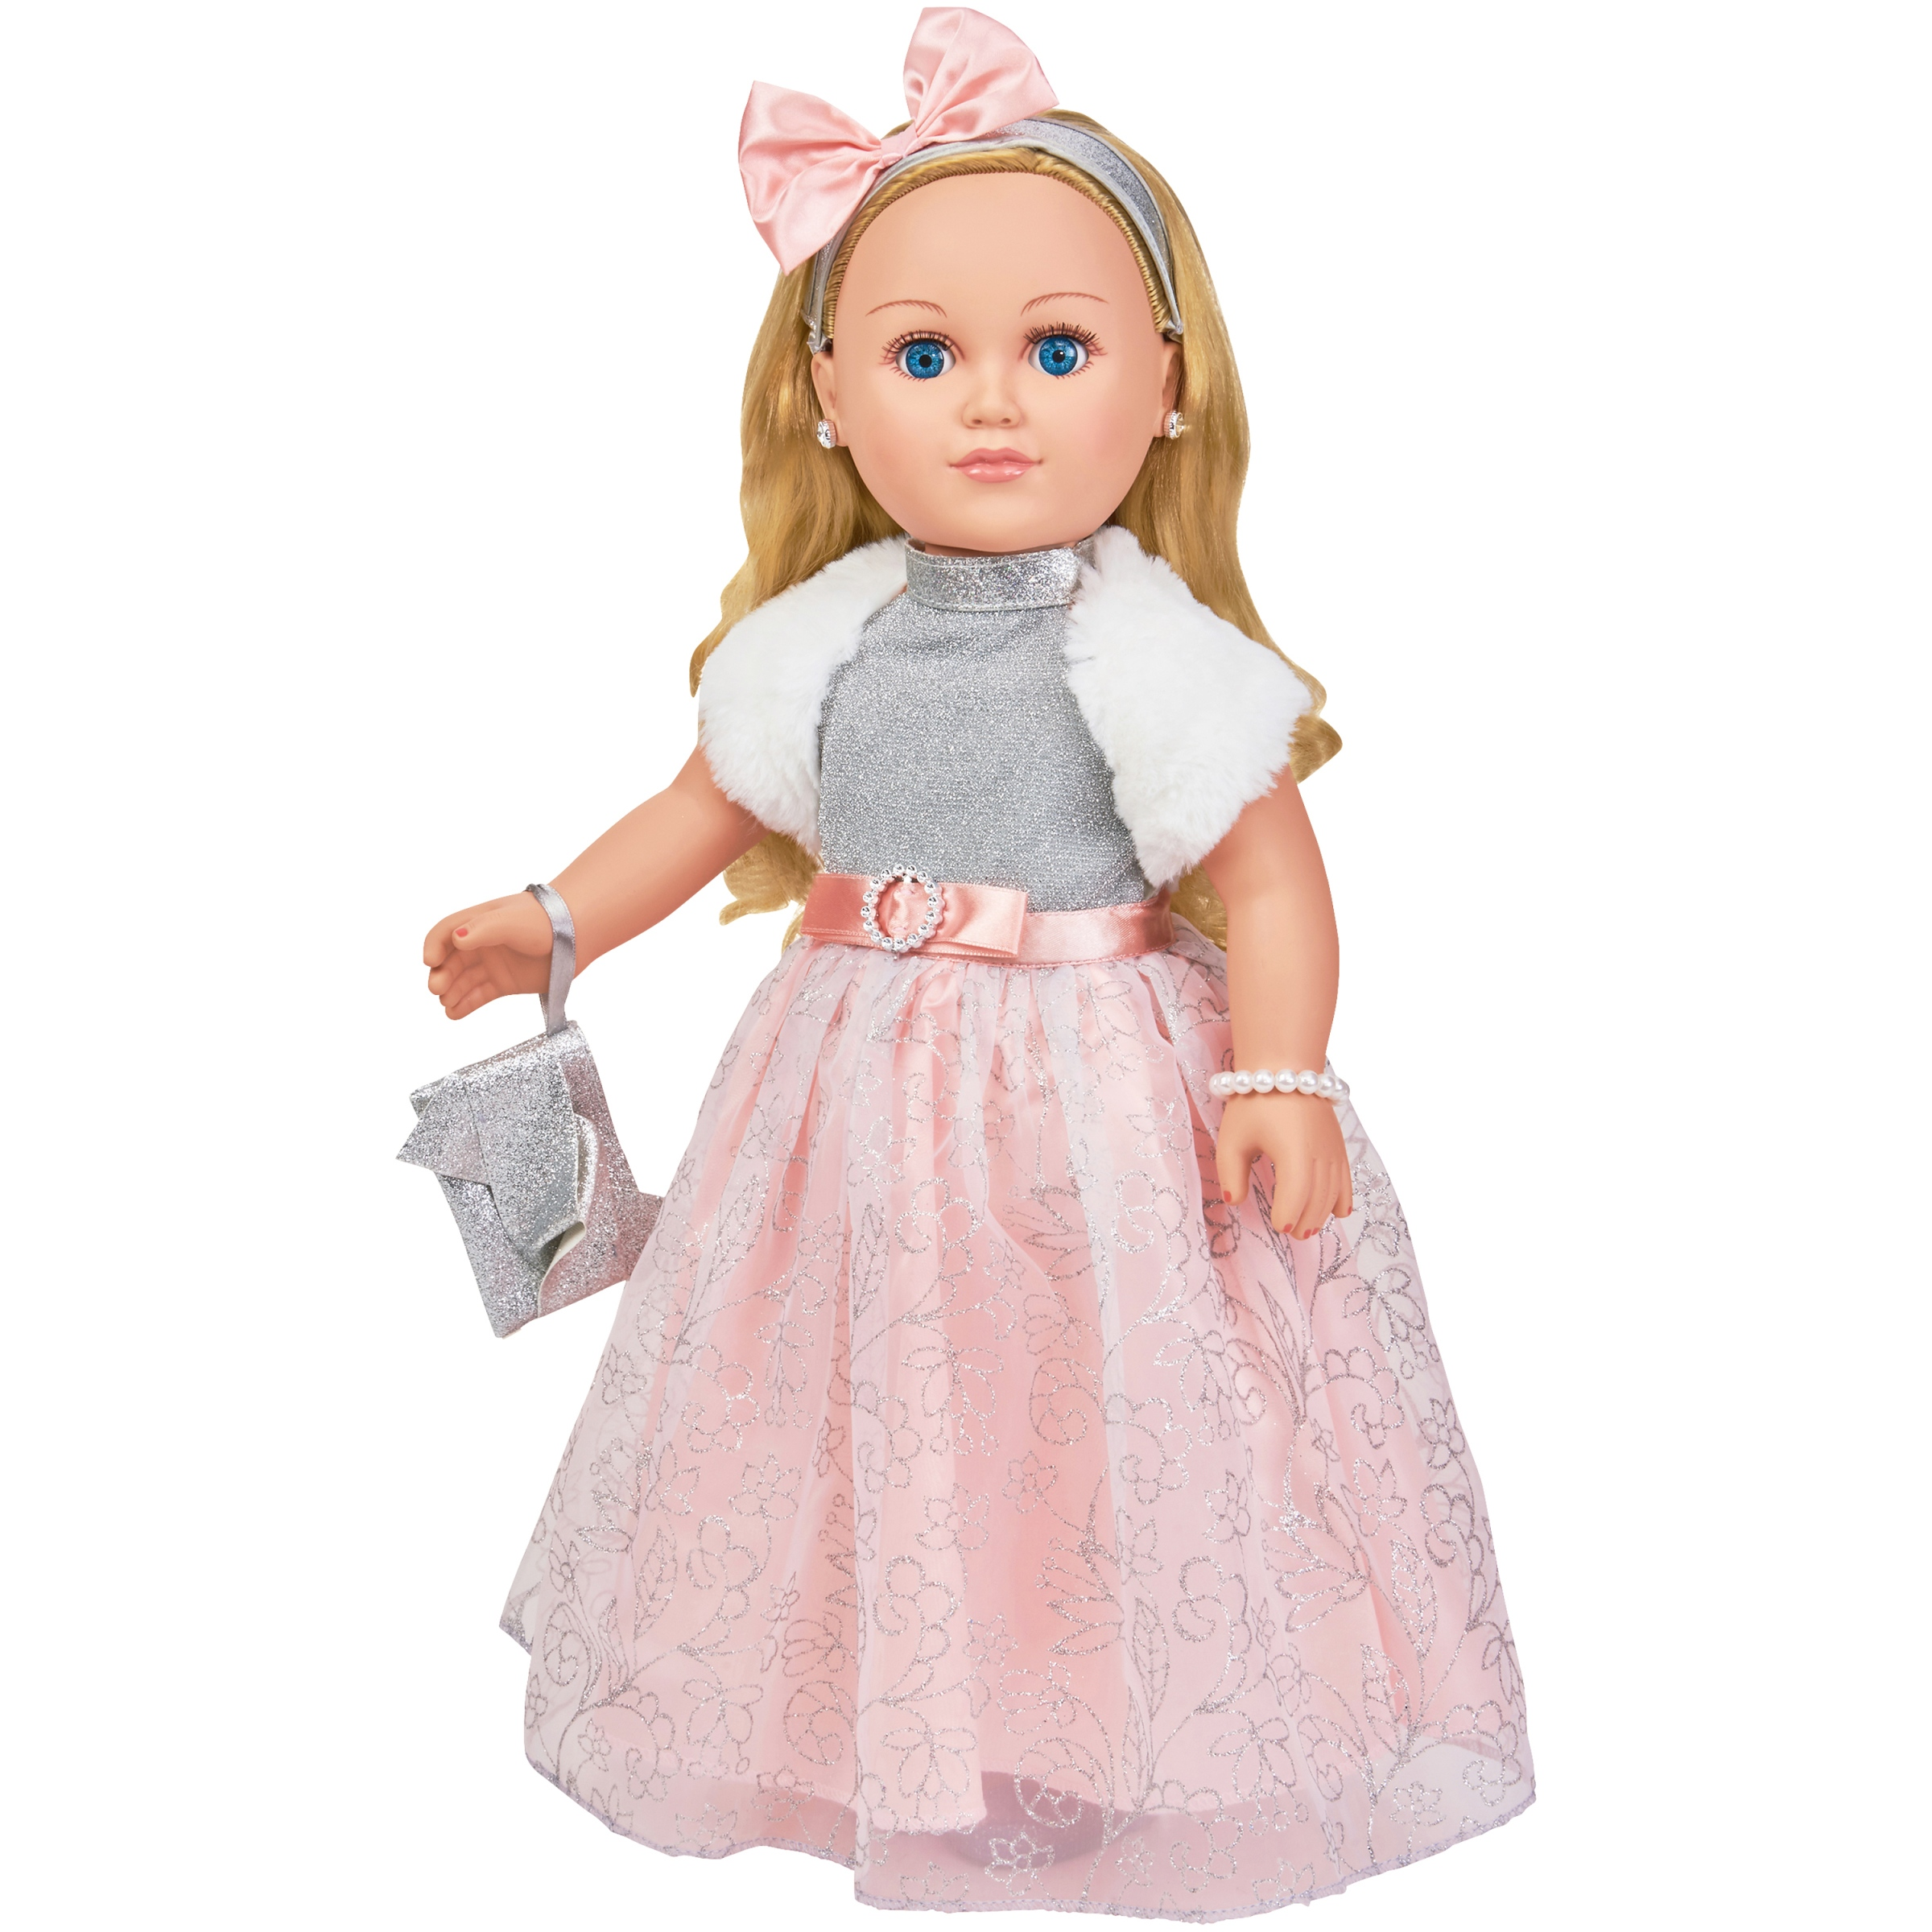 "My Life As 18"" Poseable Winter Princess Doll, Blonde Hair with a Soft Torso"